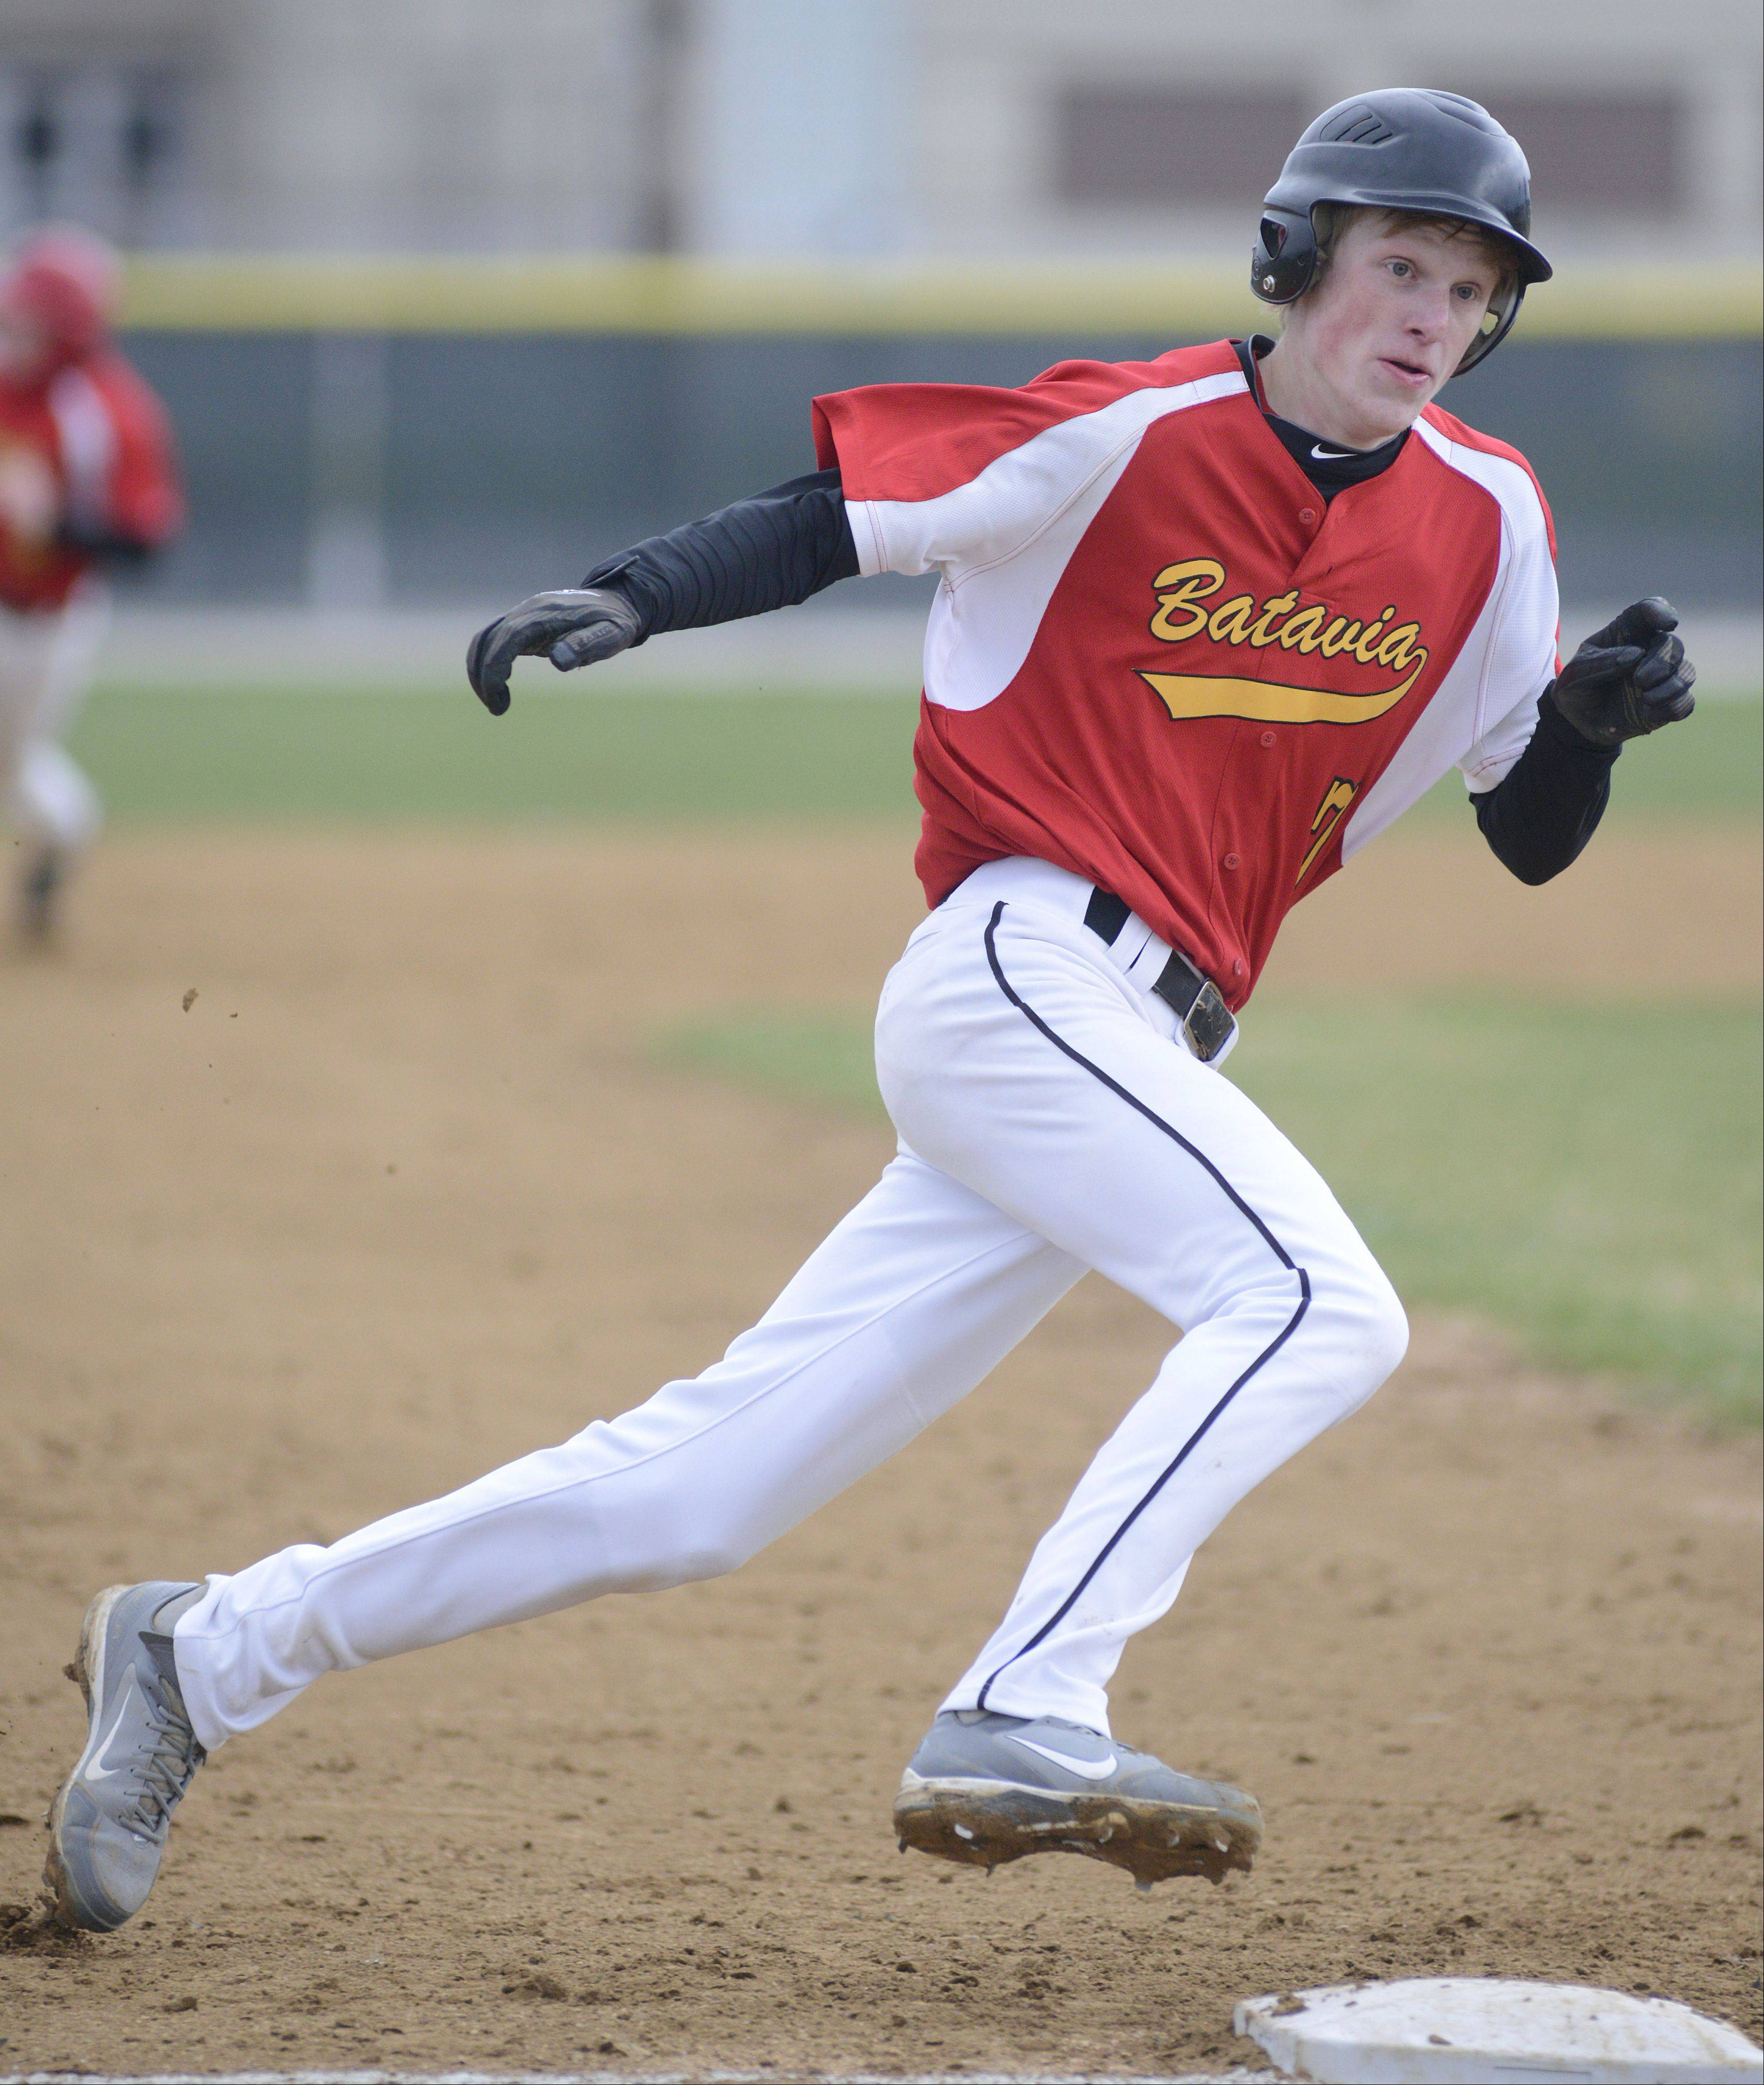 Batavia's Andrew Seigler rounds third base on his way to home plate in the second inning on Friday, April 12.